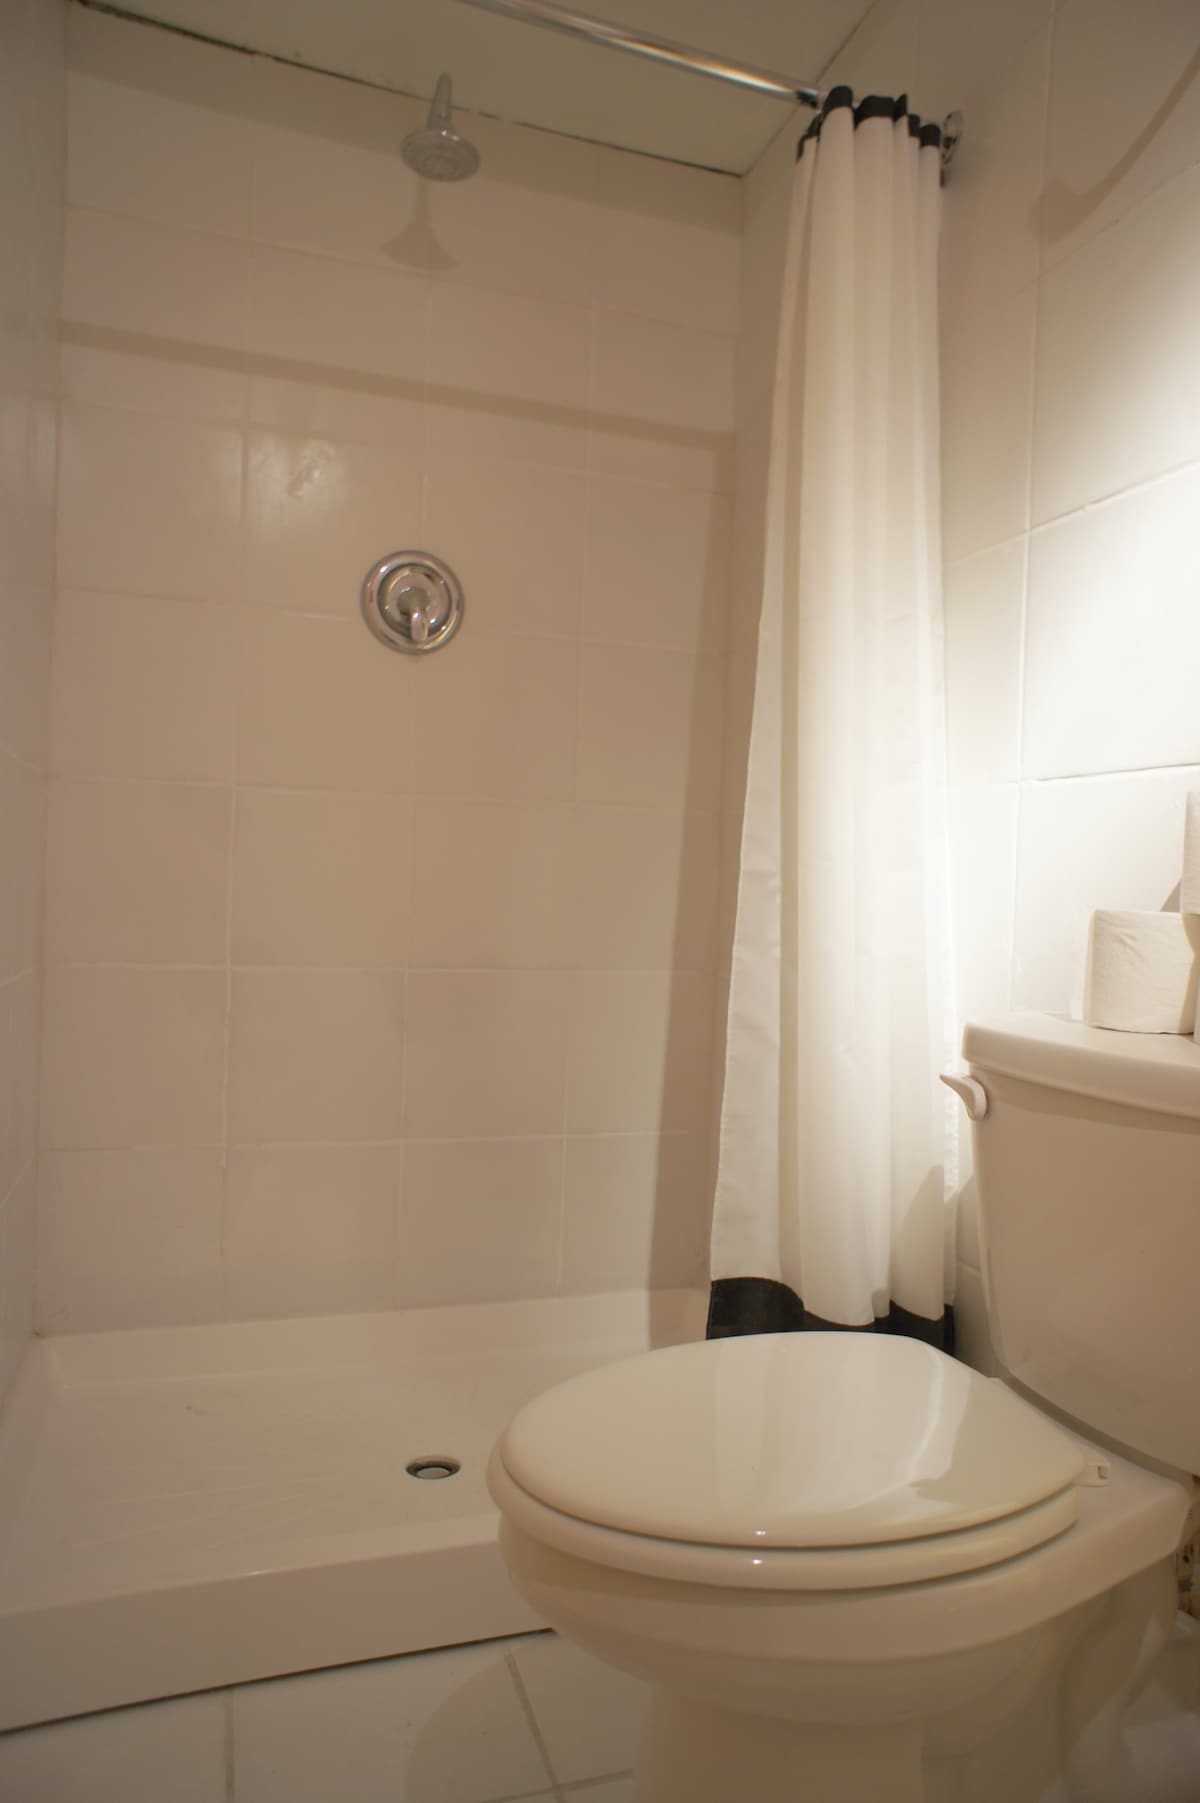 Newly built bathroom, towels provided.